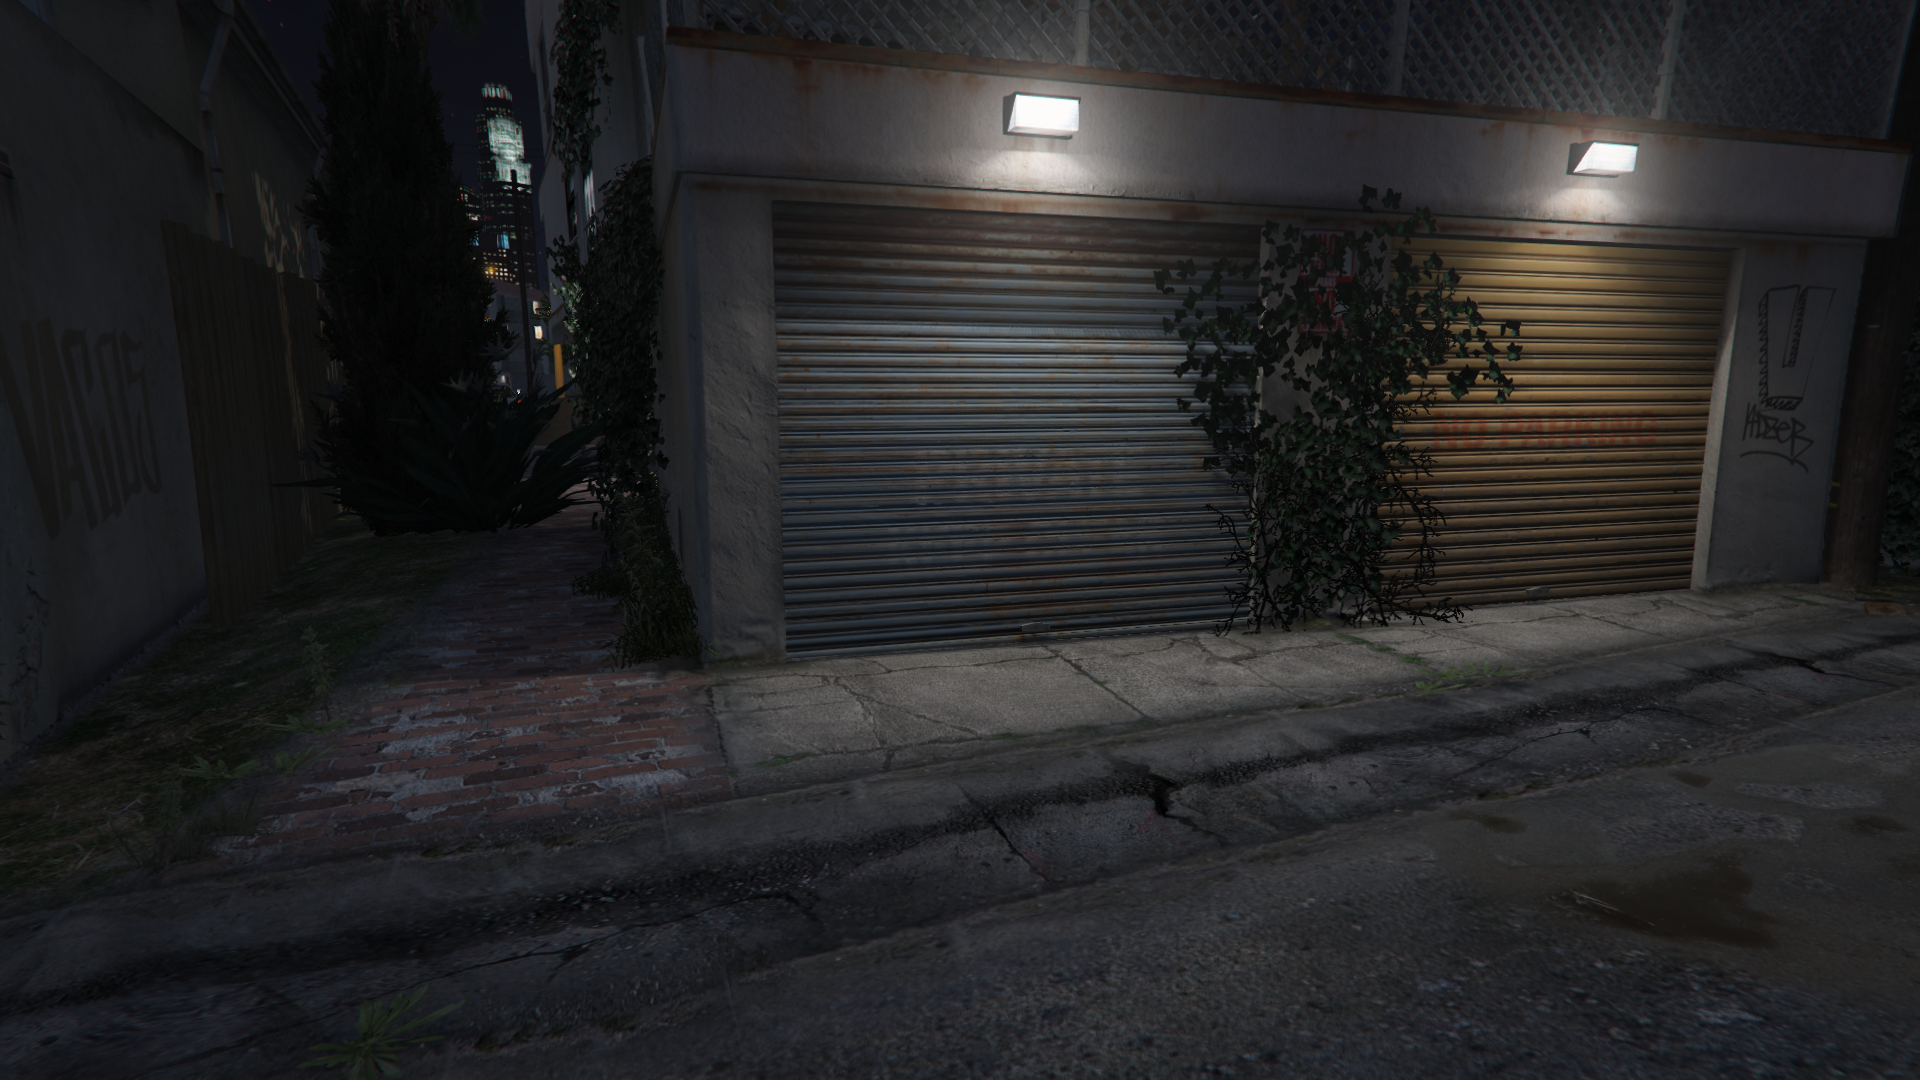 Grand-Theft-Auto-V-Screenshot-2020-11-22-00-30-31-20.png